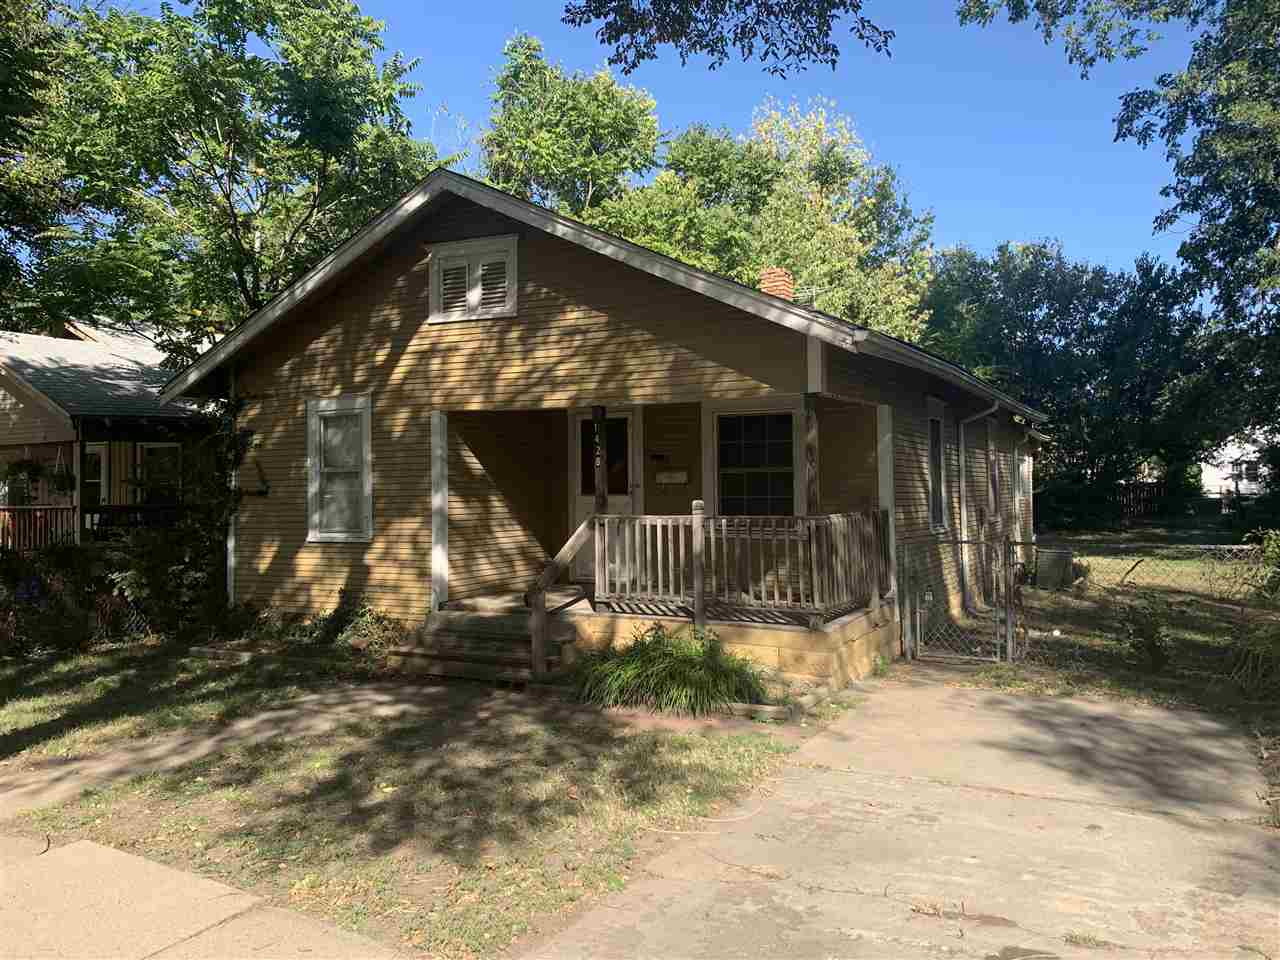 This 2 bed 1 bath home in SE Wichita will make a great first time home for a fixer upper or an excel